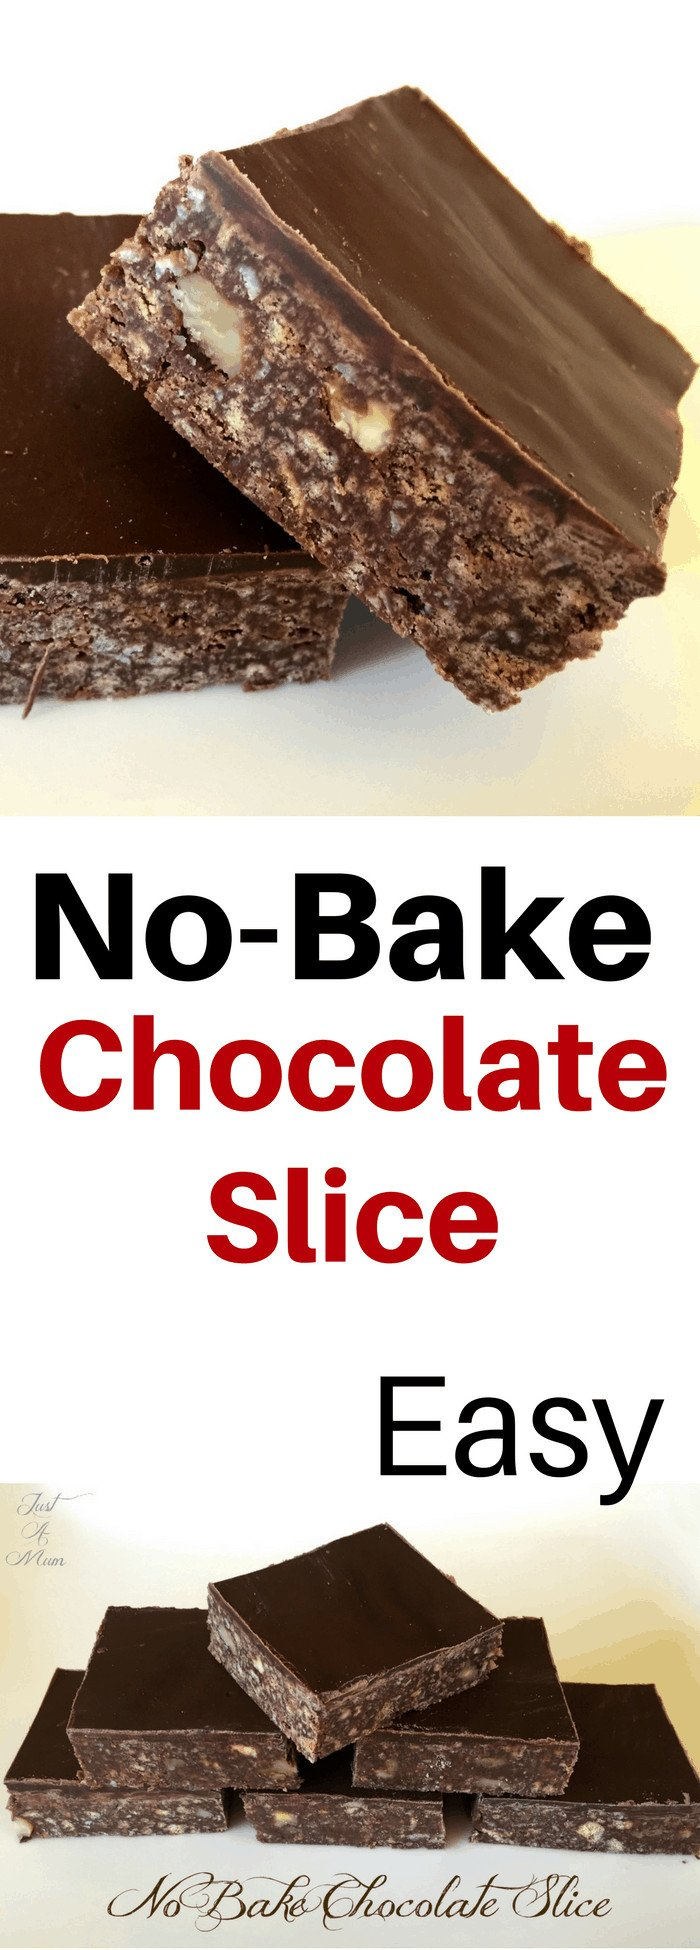 Just A Mum's Easy No Bake Chocolate Slice